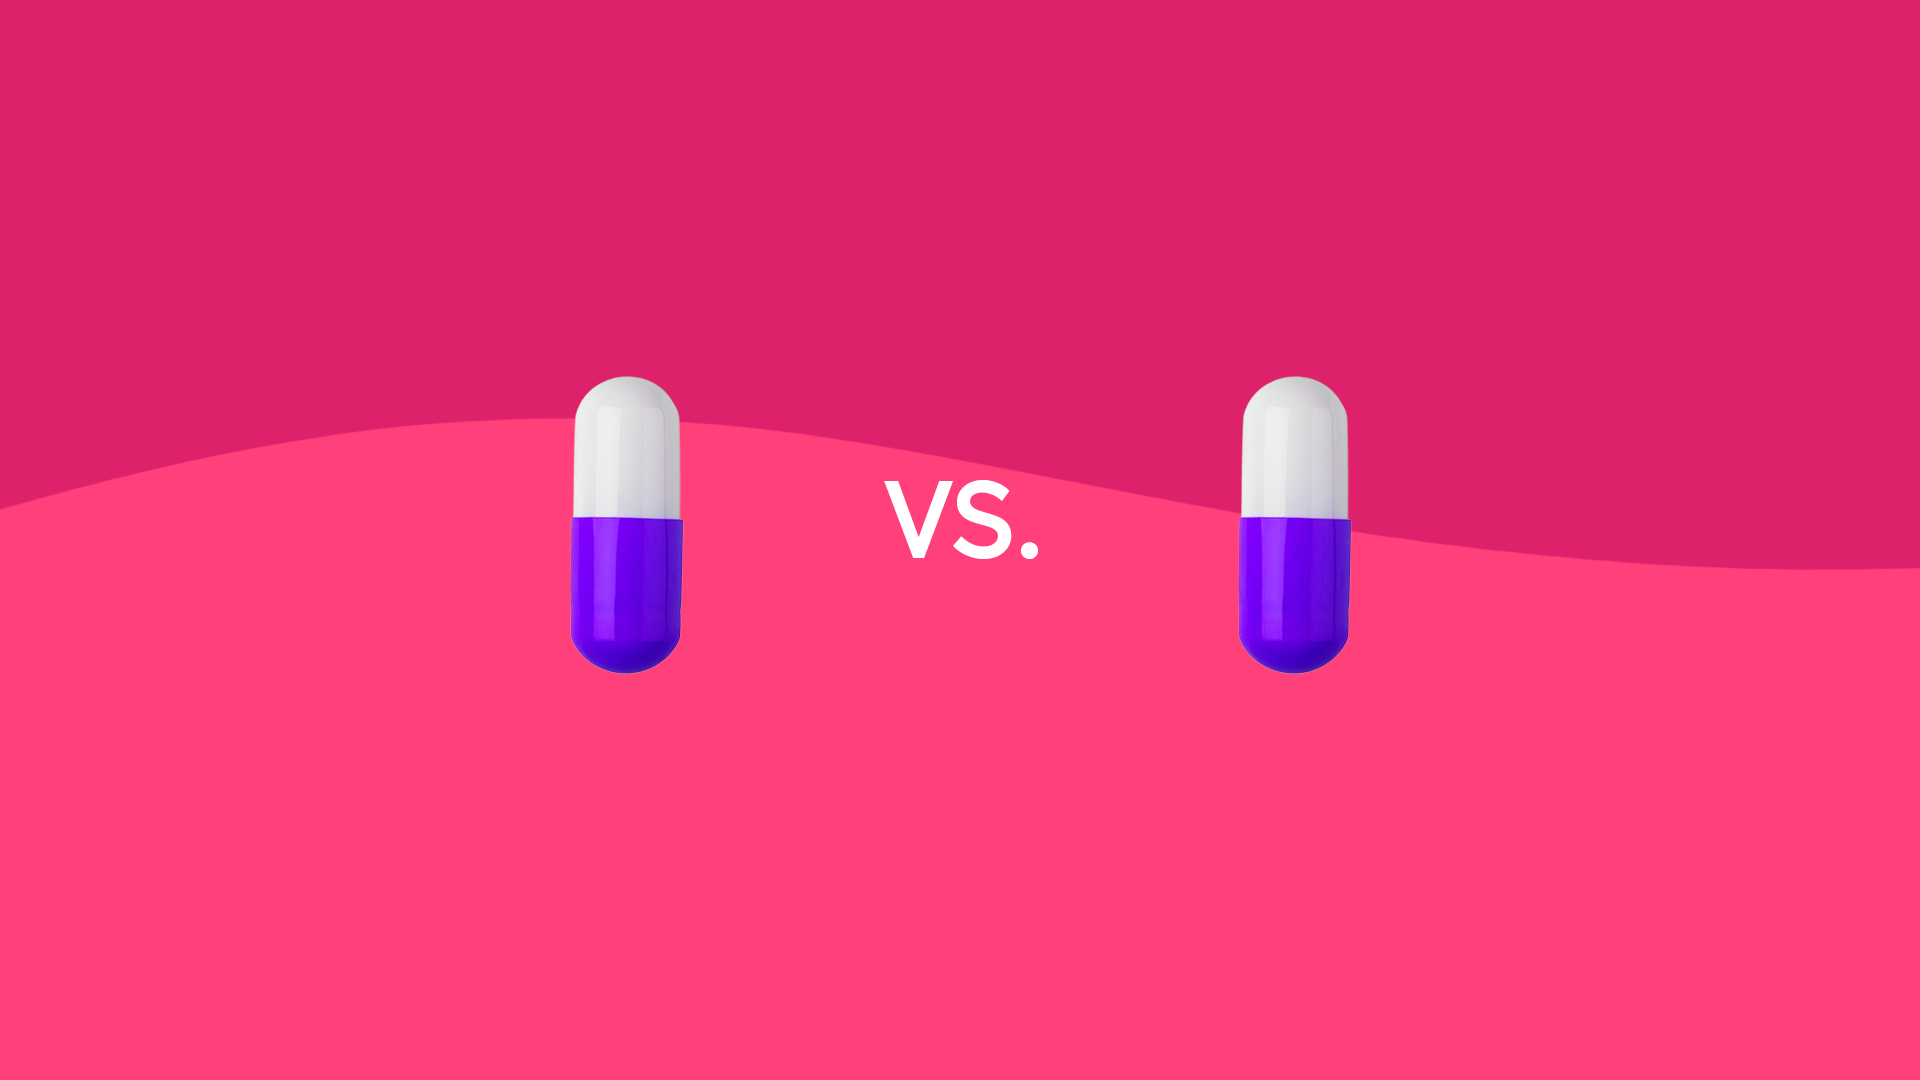 Cephalexin Vs Amoxicillin Differences Similarities And Which Is Better For You